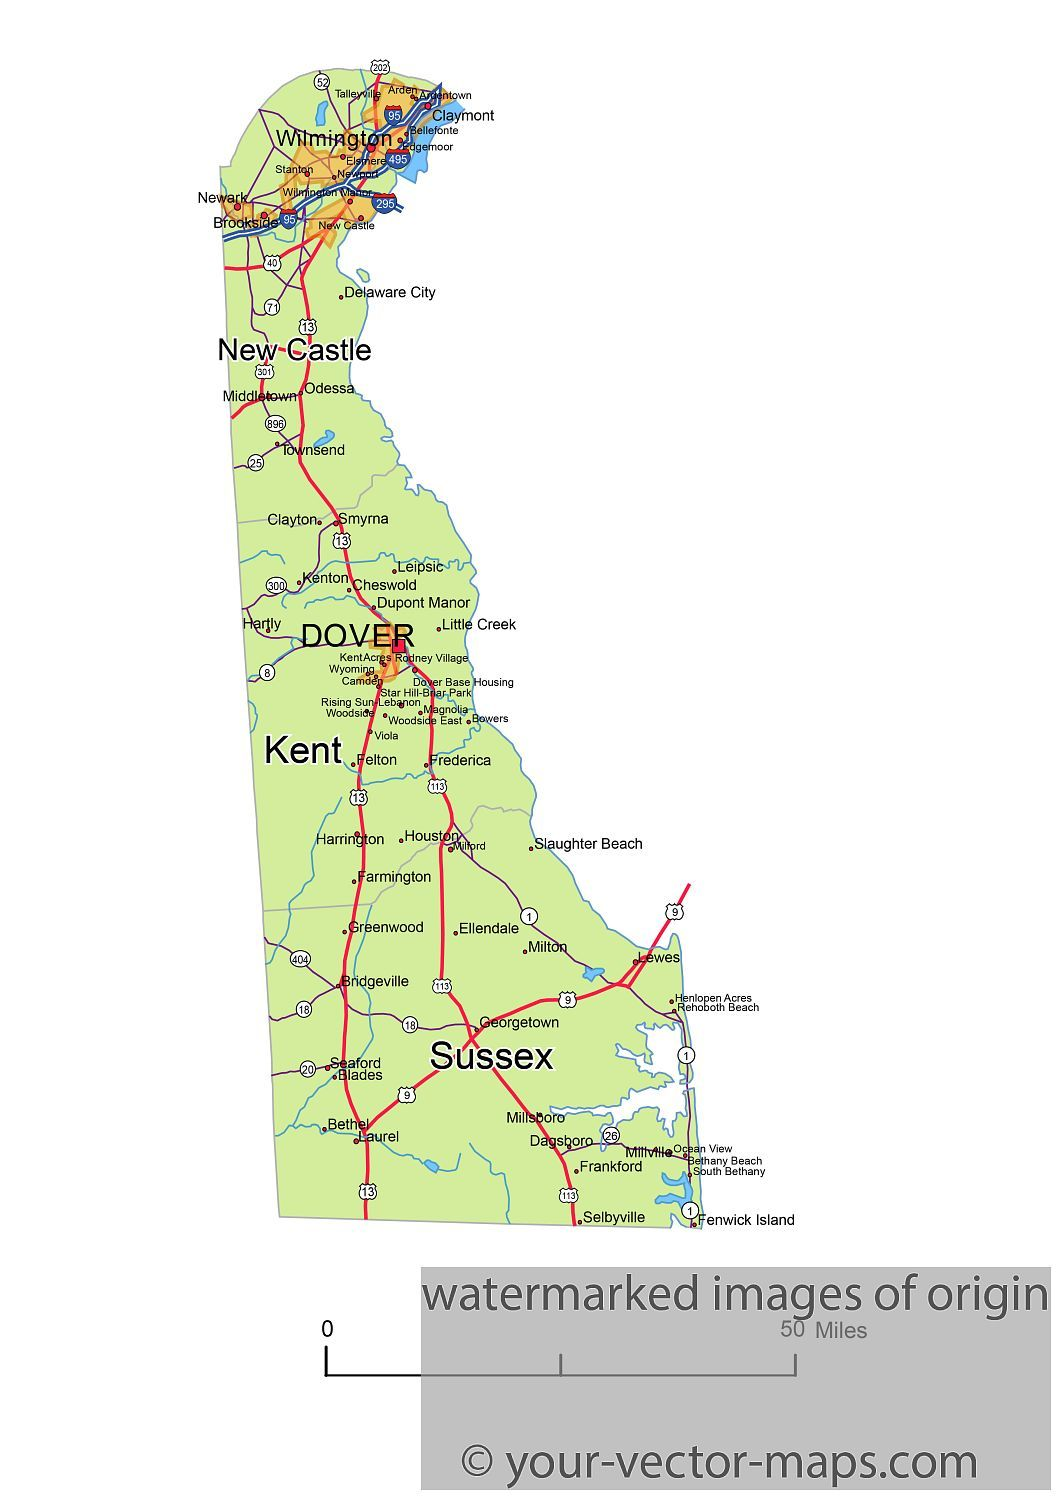 Delaware state route network map Delaware highways map Cities of